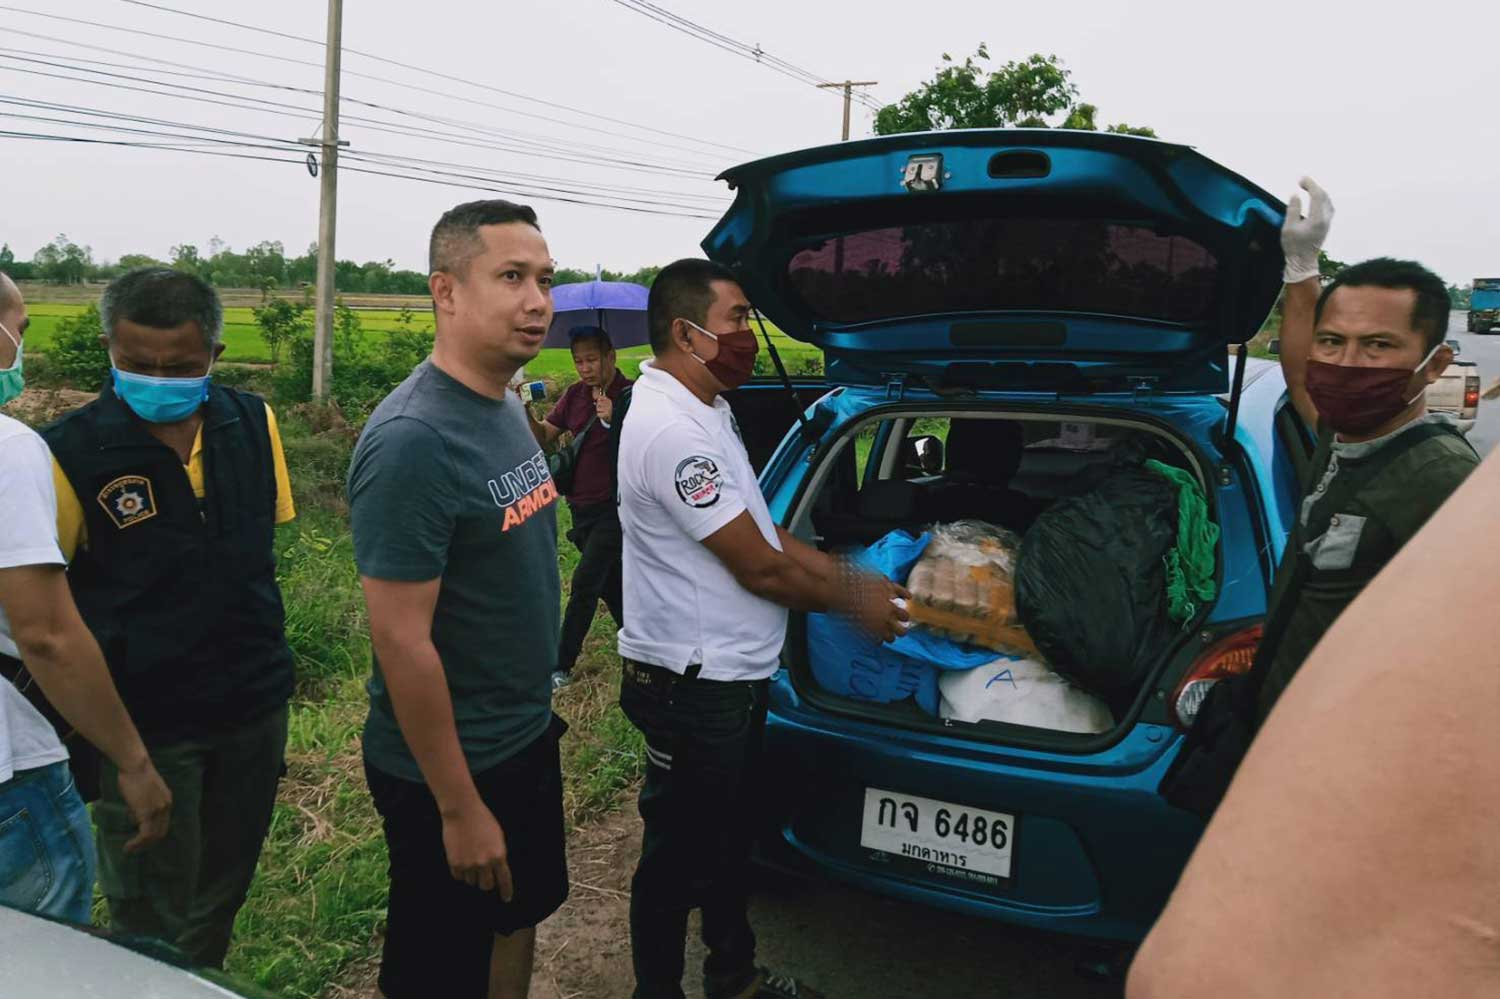 Somphan Sri-ubon, 43, in a white T-shirt, is caught with sacks containing meth pills in  his car in Kantharawichai district, Maha Sarakham province, on Monday. (Photo: Yongyuth Phuphuangpet)